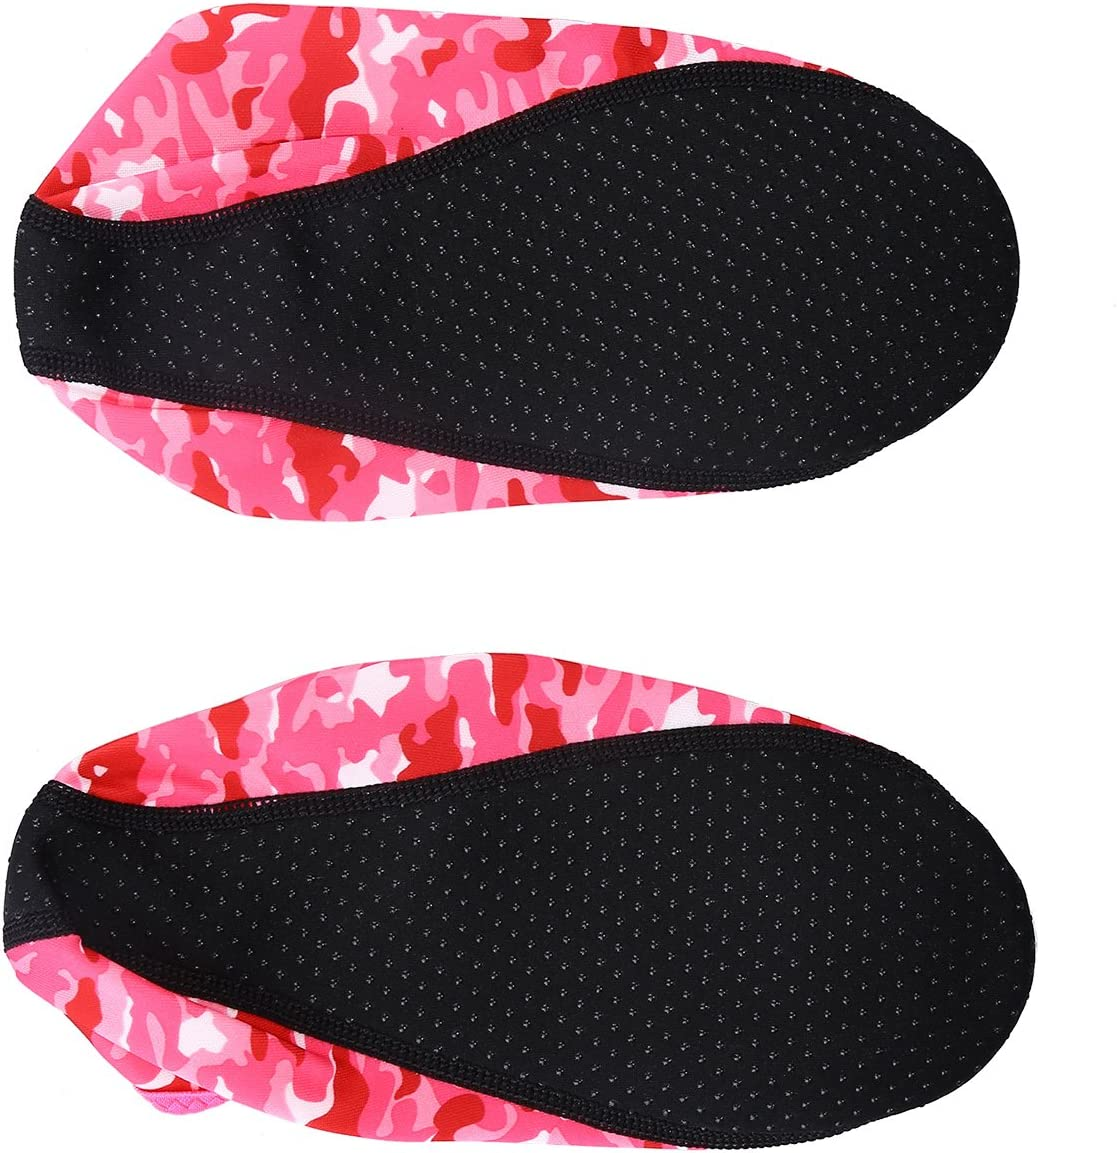 Zetiling Camouflage Beach Shoes Beach Water Shoes Calze per Il Nuoto allaperto Beach Surf